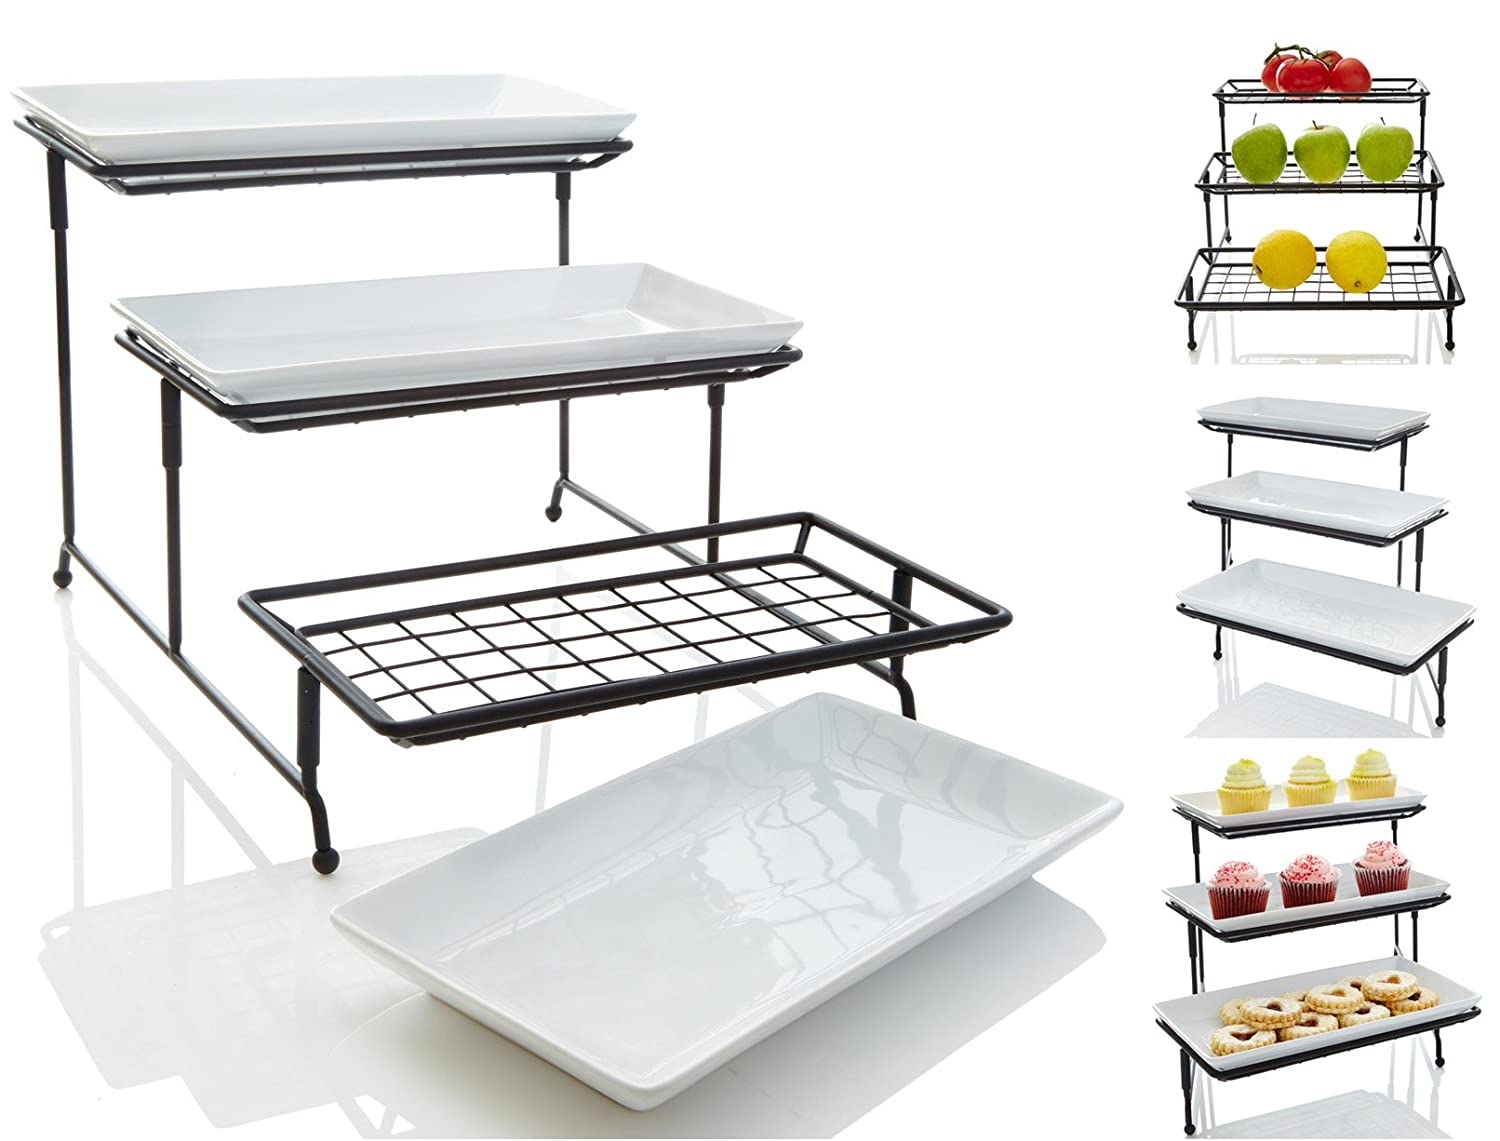 Amazon.com: Tiered Trays & Platters: Home & Kitchen